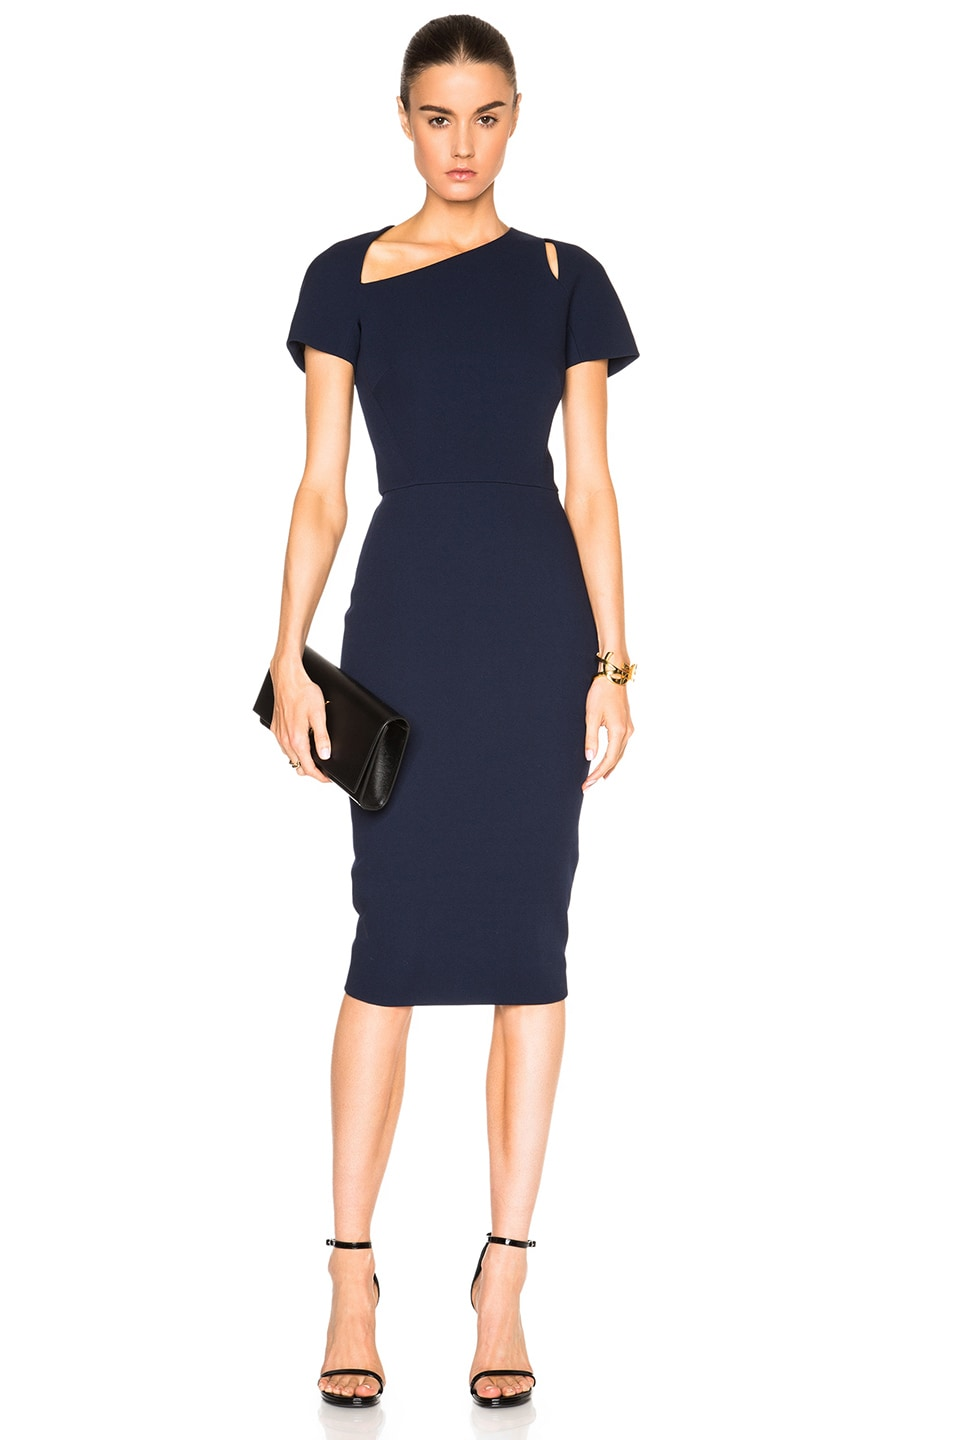 118f7ffec3b1c8 Image 1 of Victoria Beckham Light Matte Crepe Cap Sleeve Cut Out Dress in  Navy